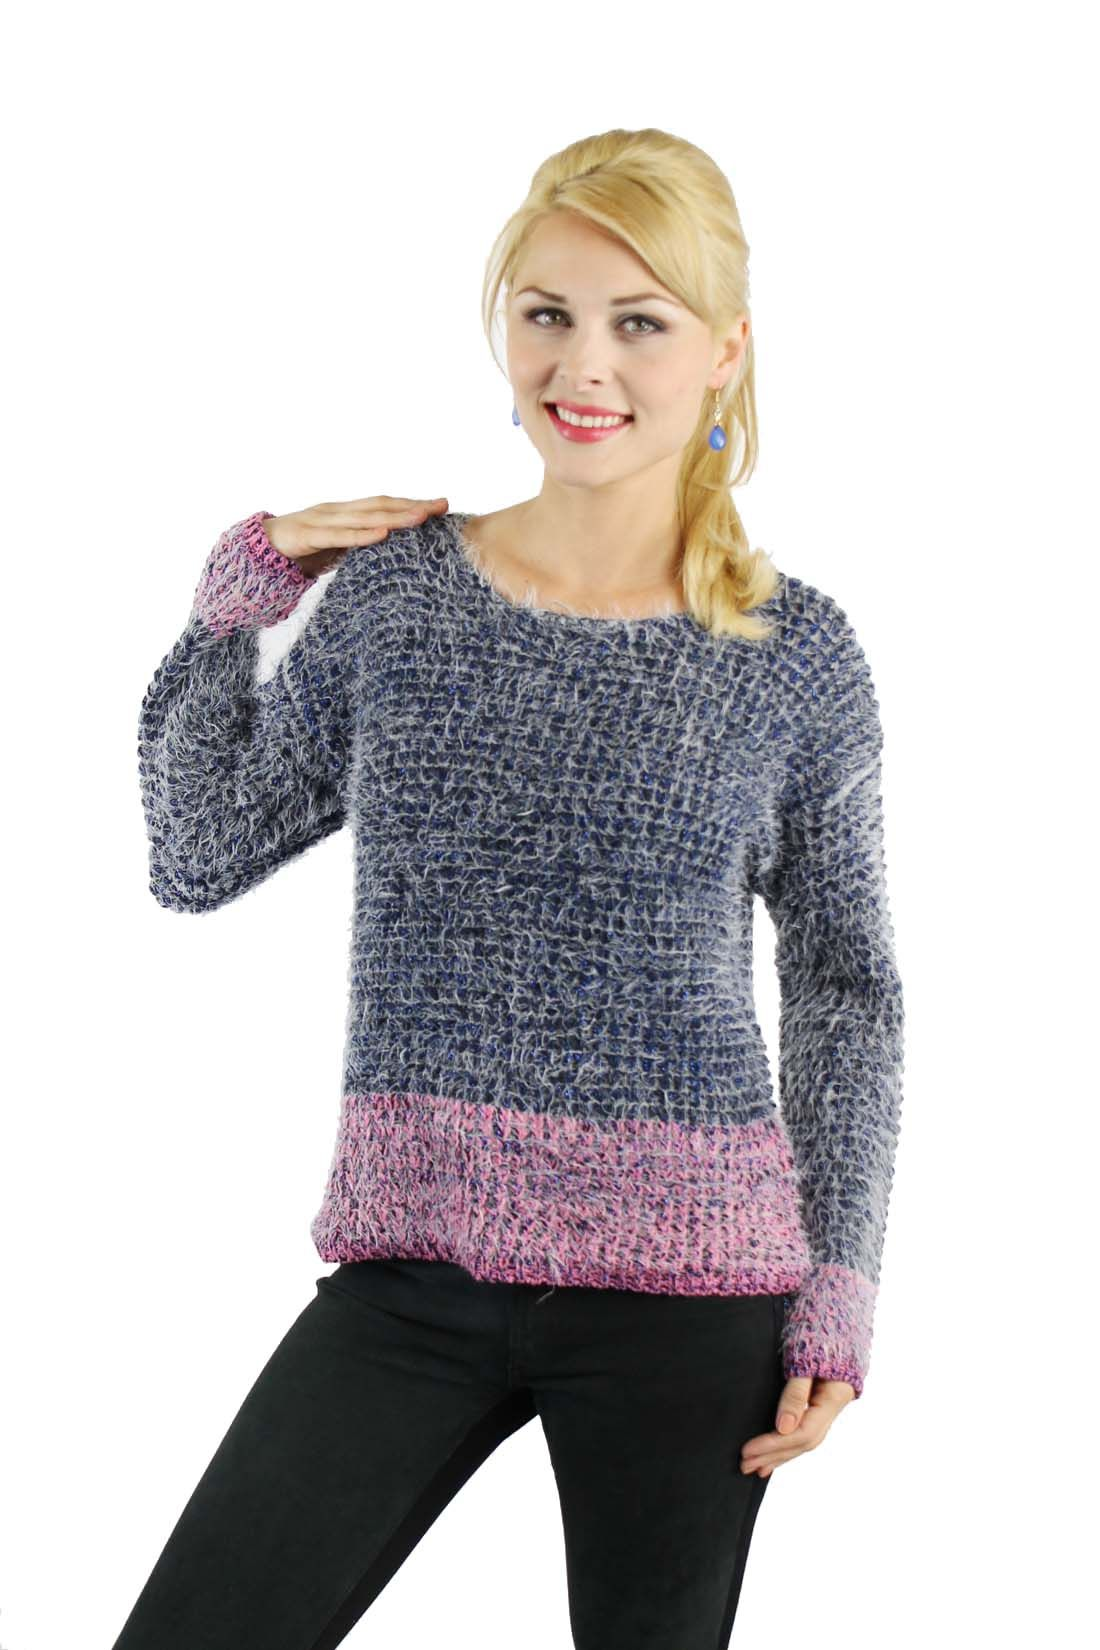 Enewwholesale sells Blue fuzzy shimmered sweater with pink strip ...